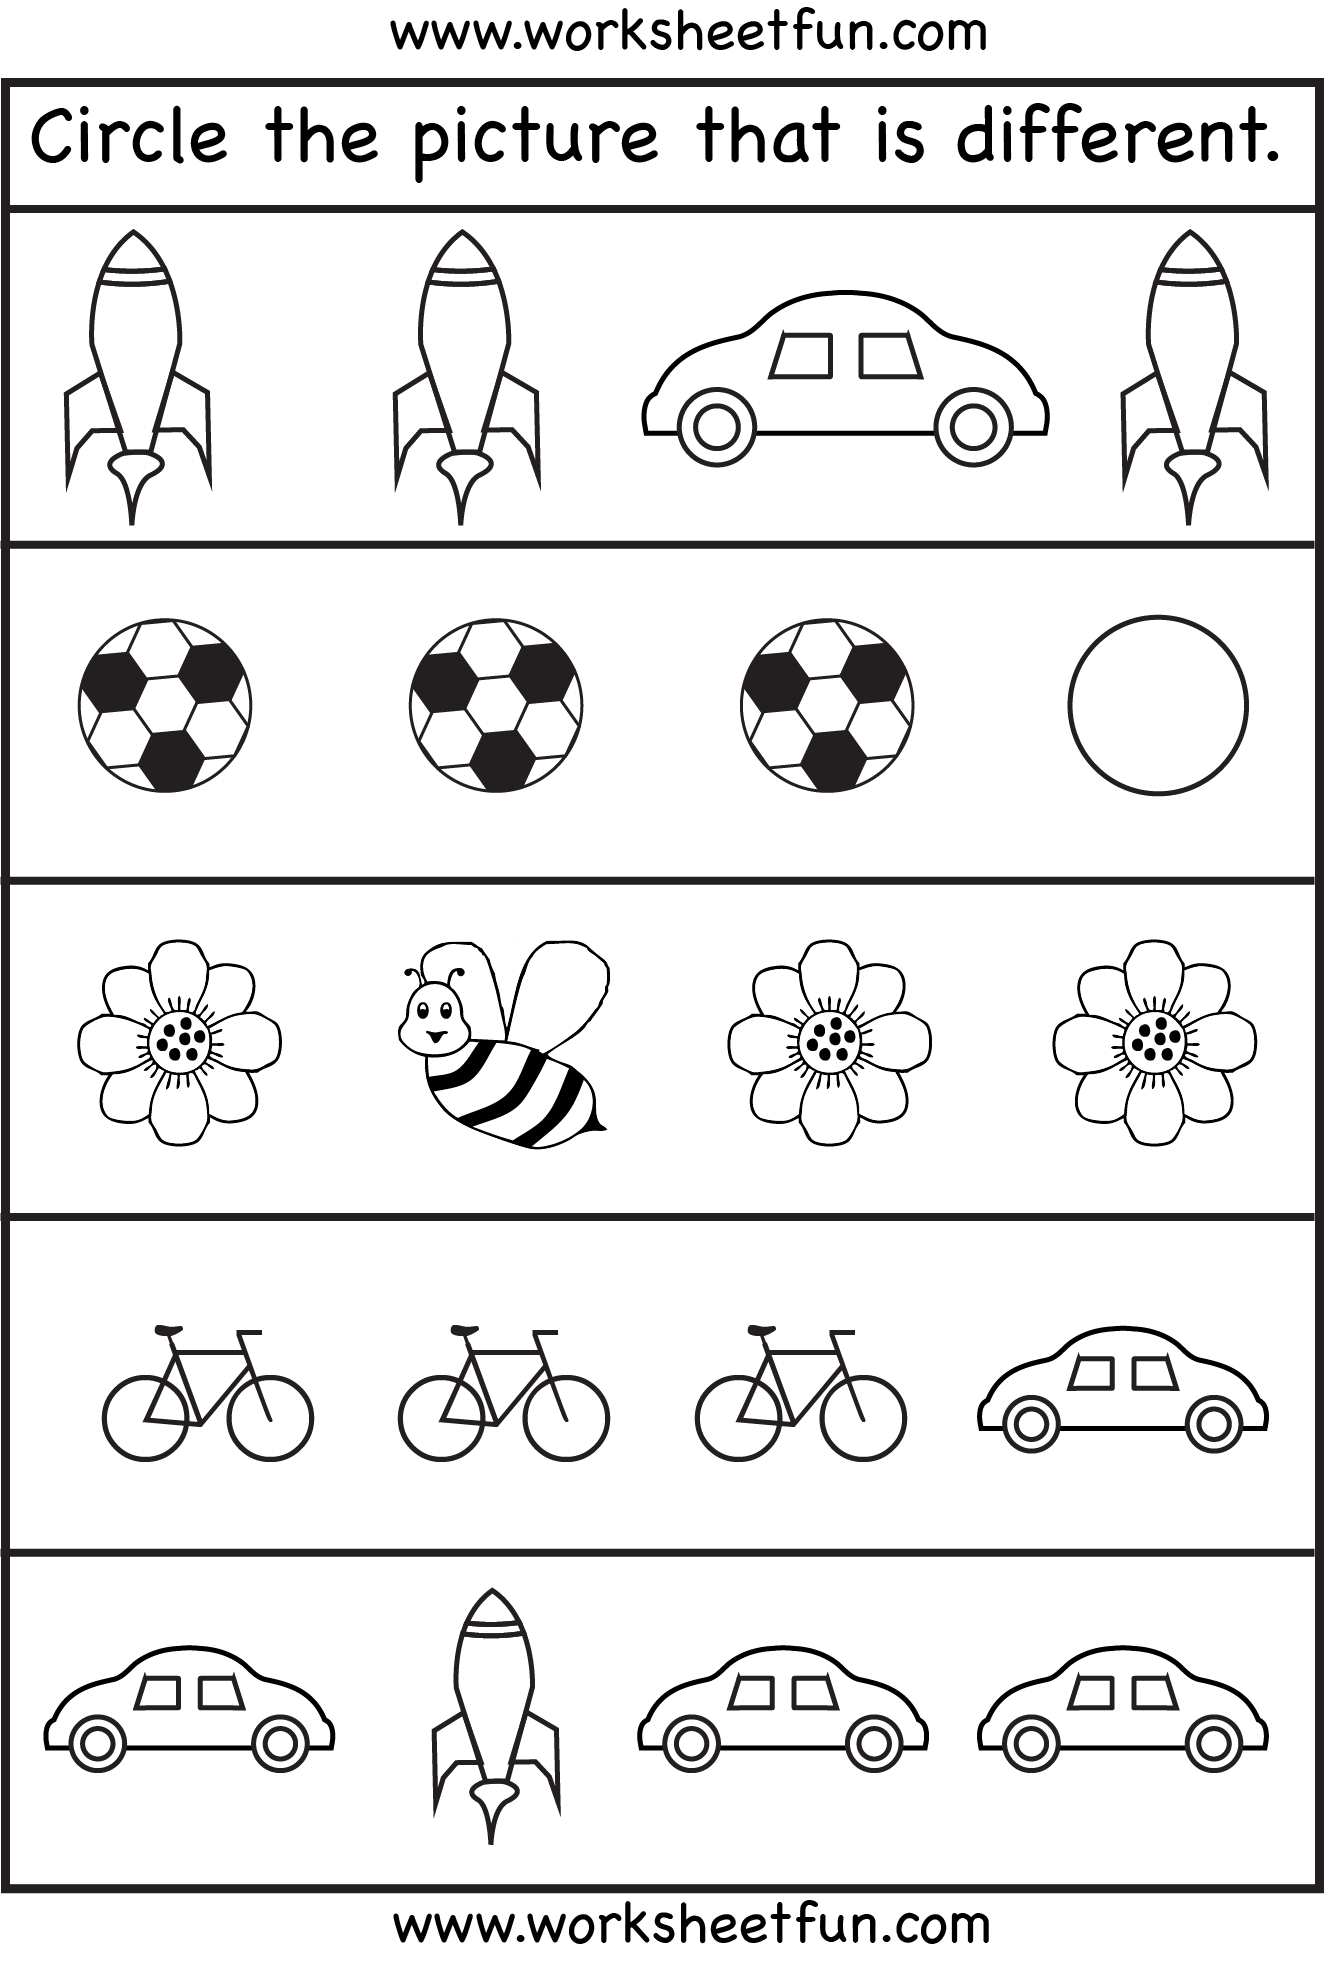 Worksheets Free Worksheets Preschool circle the picture that is different 4 worksheets preschool work and other concepts shapes math etc free printable kindergarten workshe